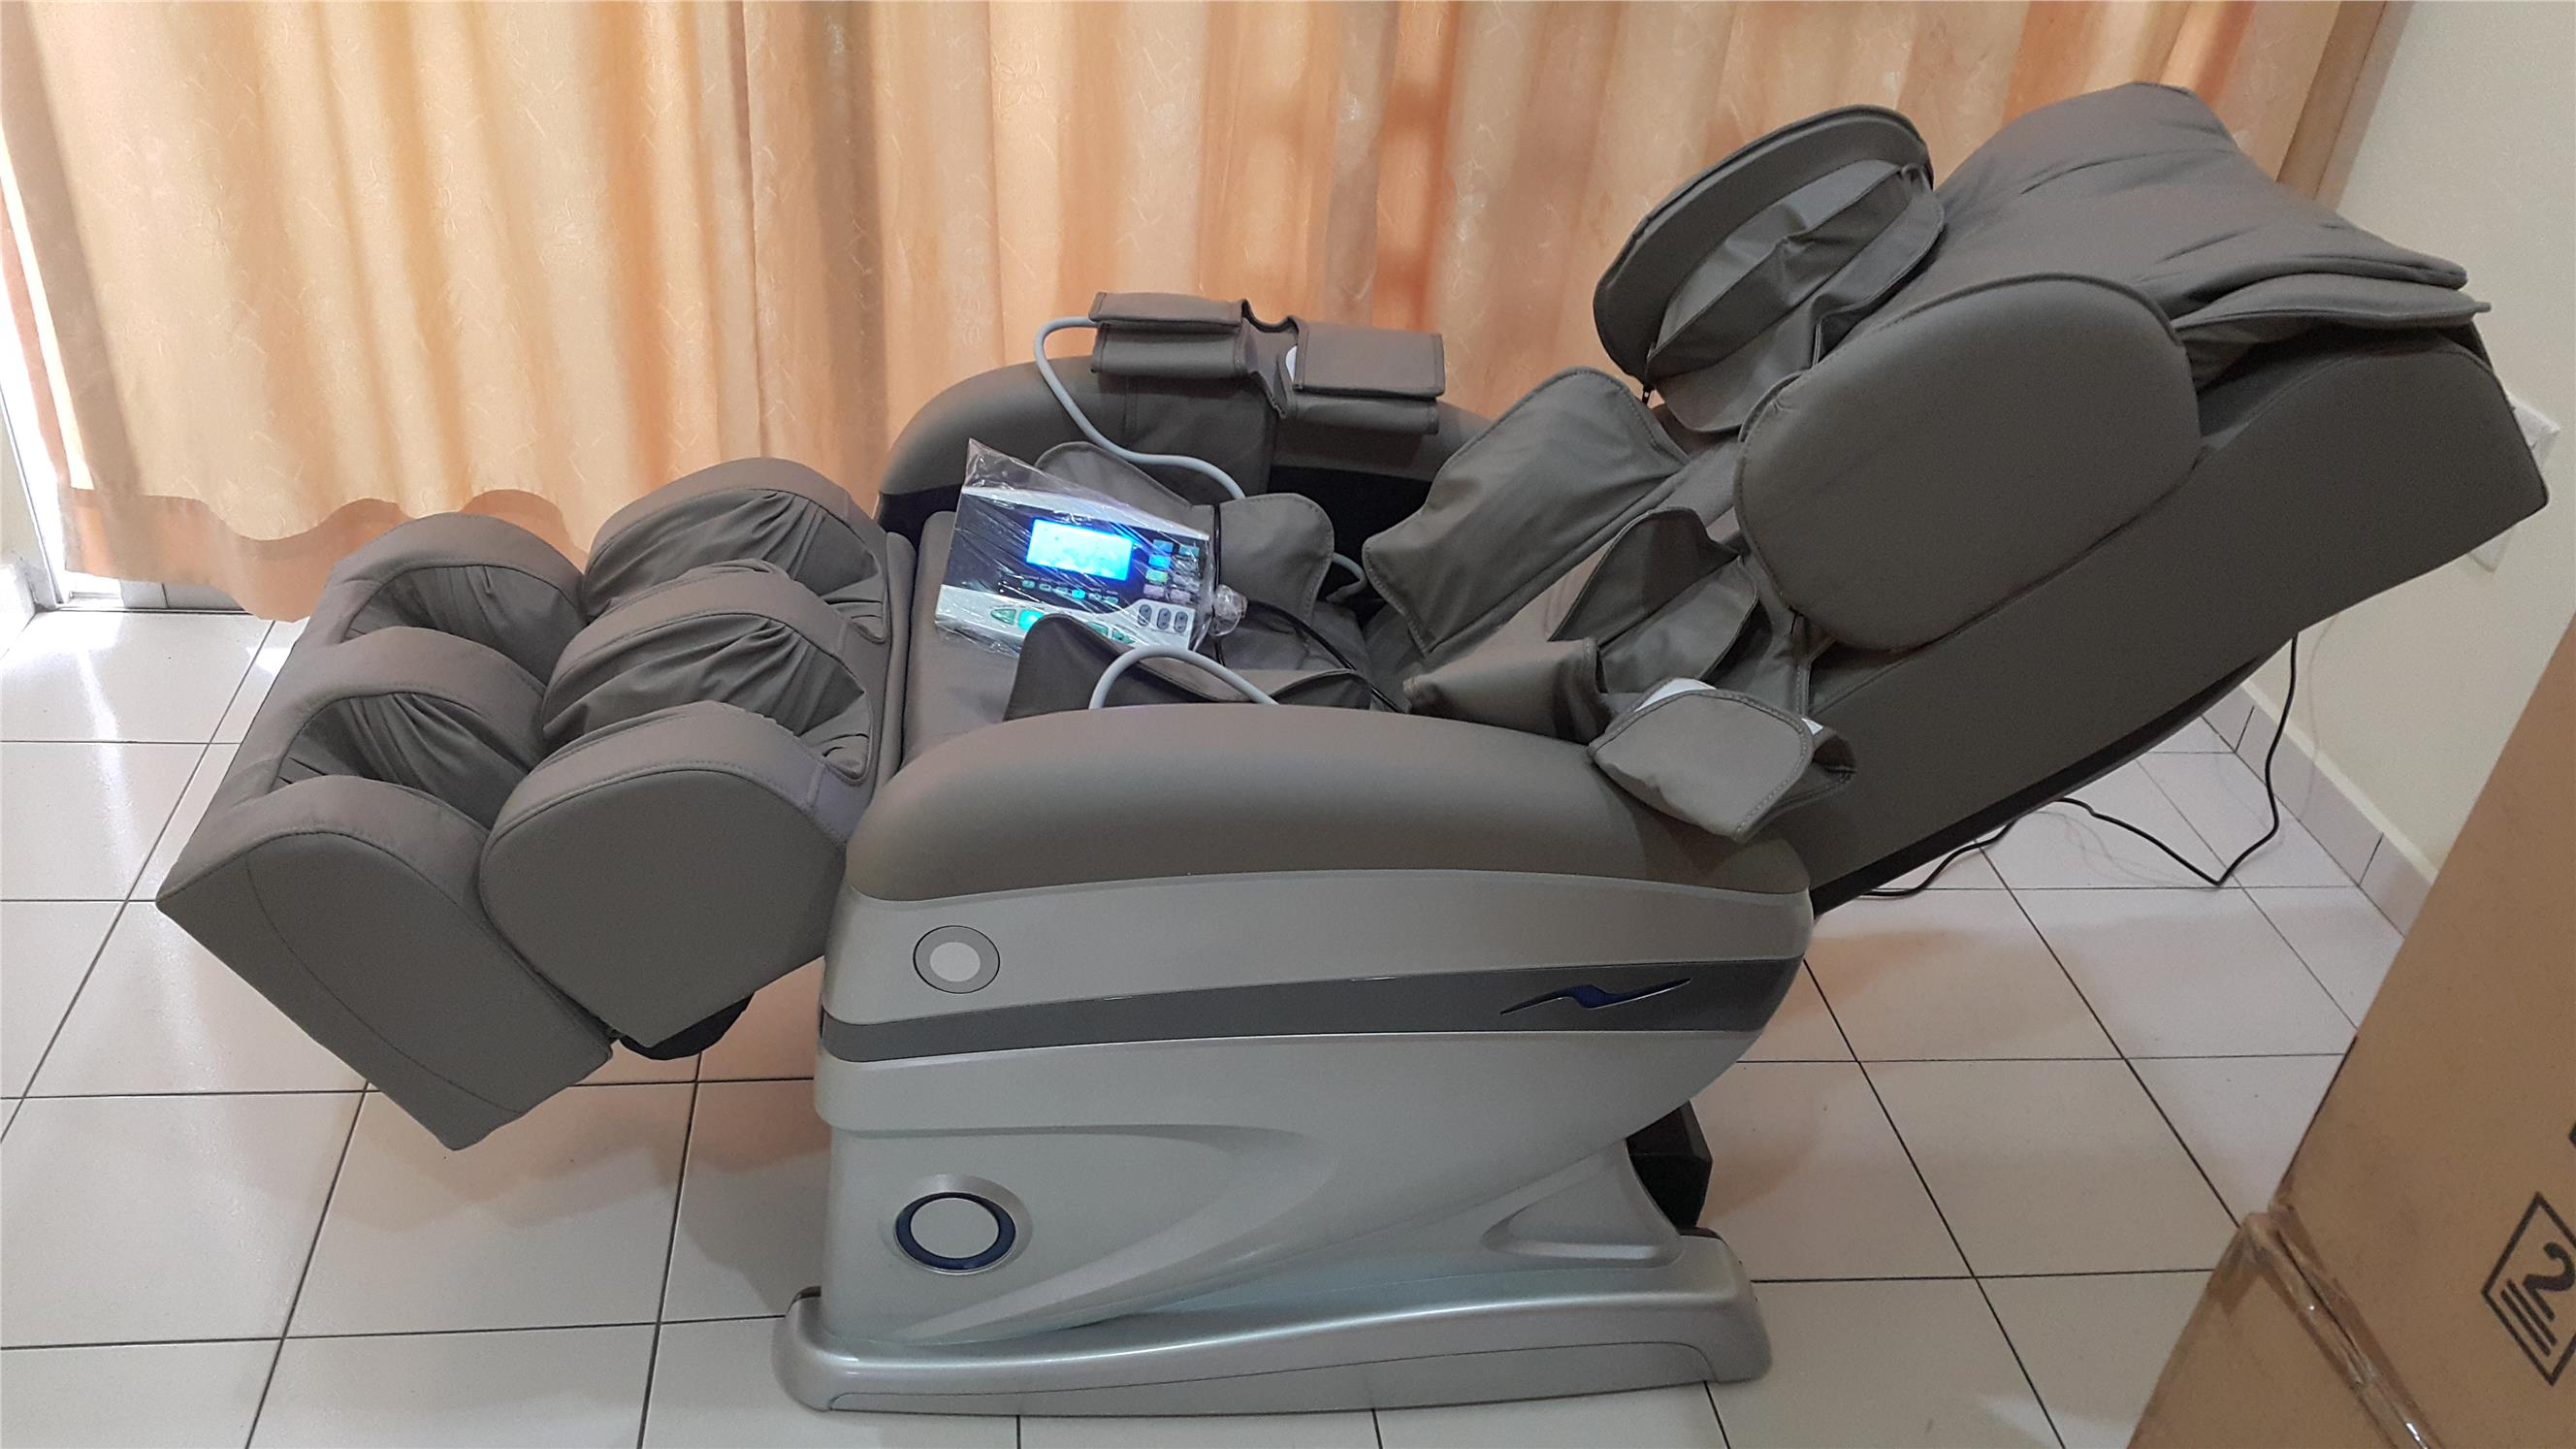 Top Rated Massage Chairs Brand New Luxury Massage Chair End 12 21 2017 11 15 Pm